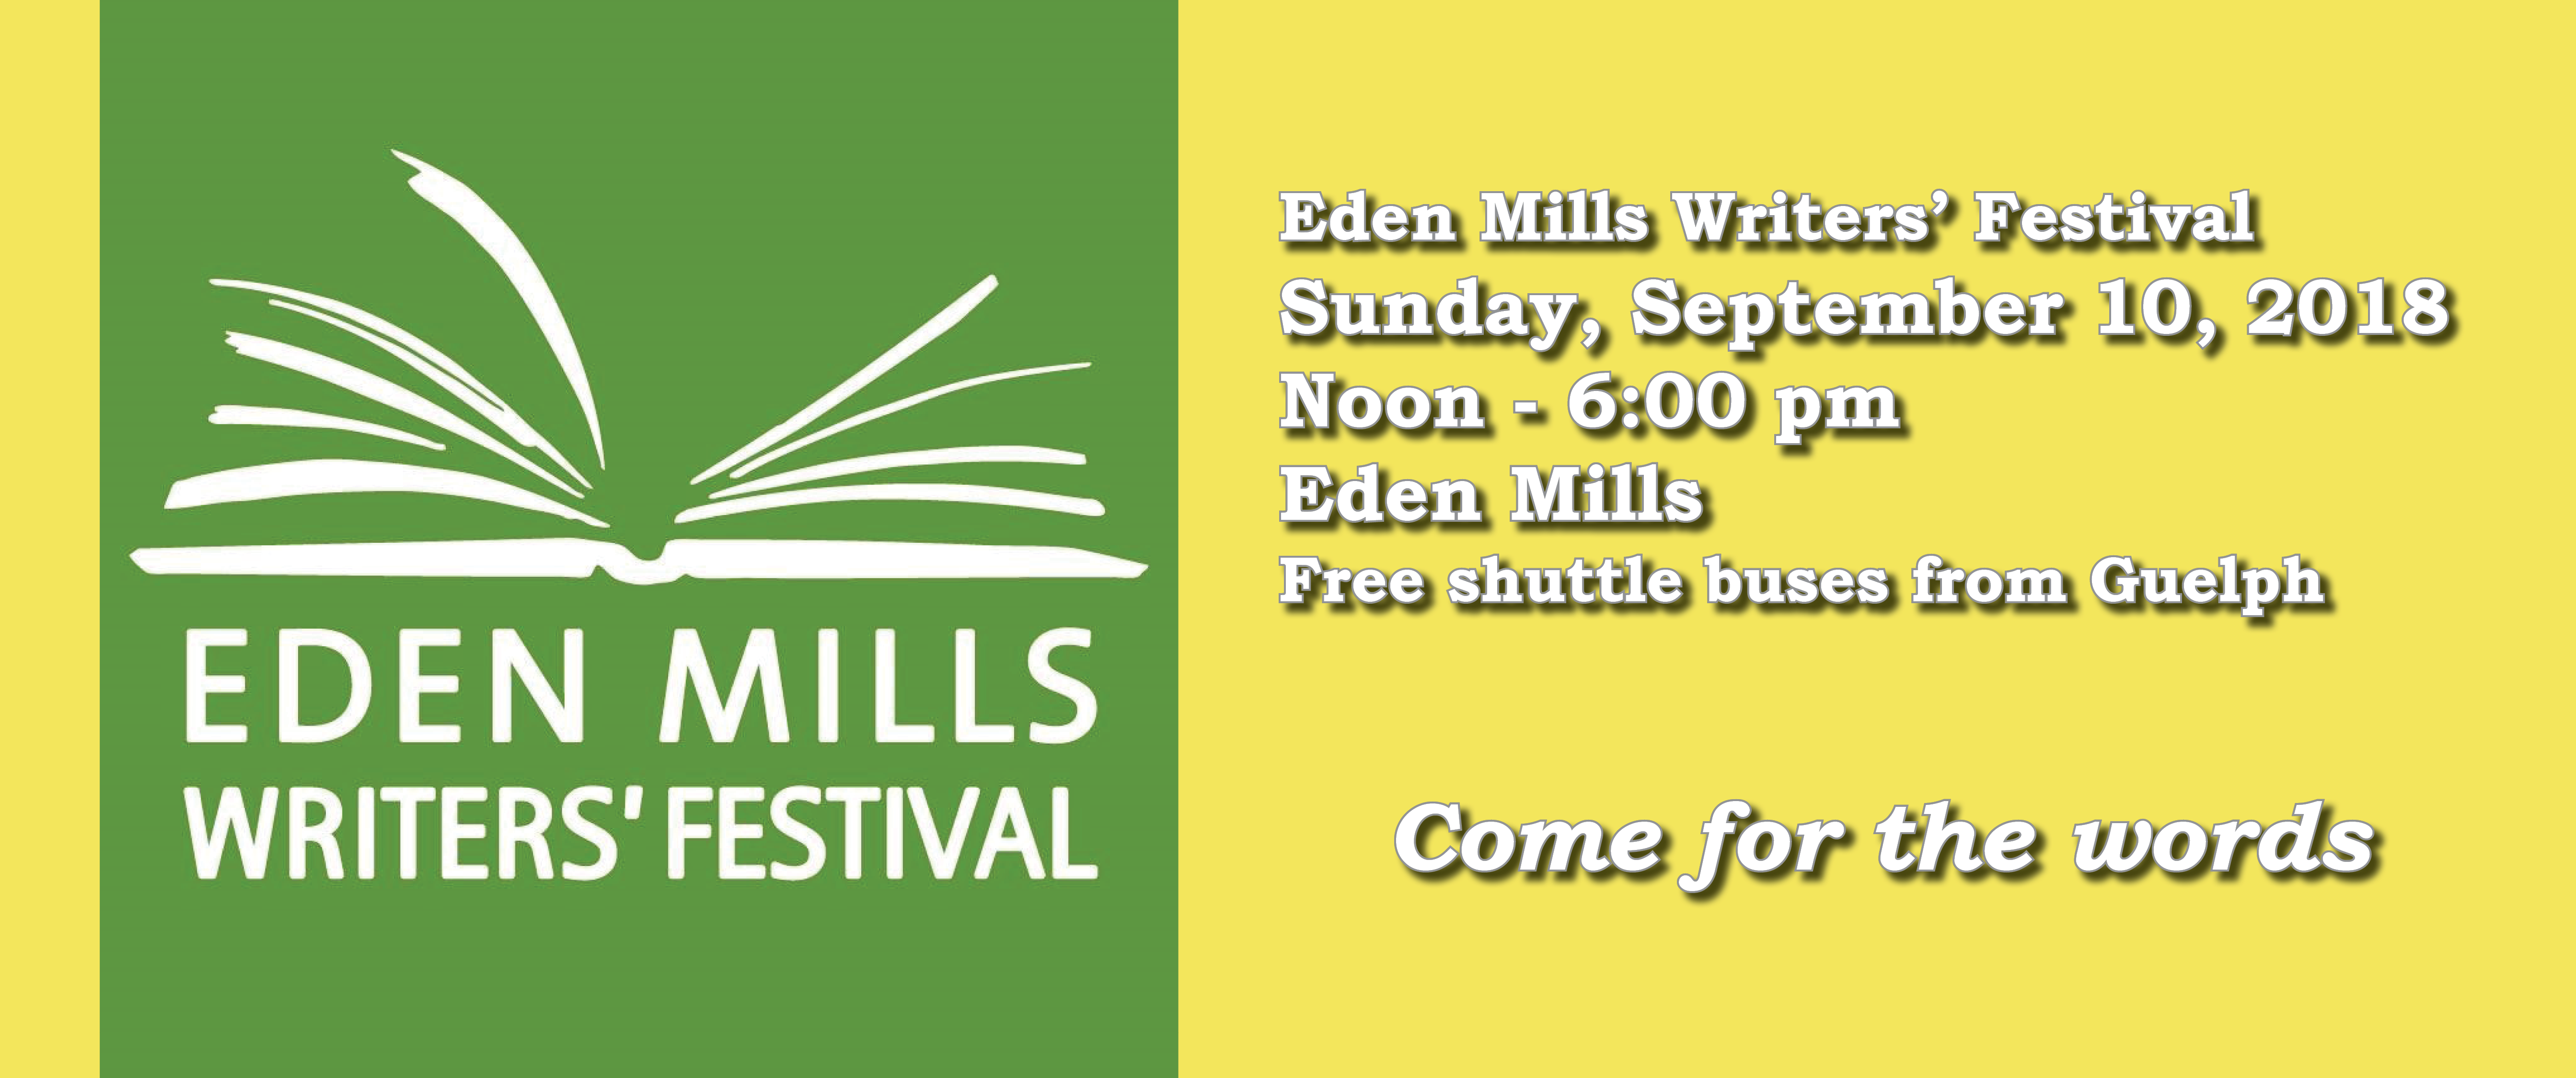 Eden_Mills_Writers_Festival.png